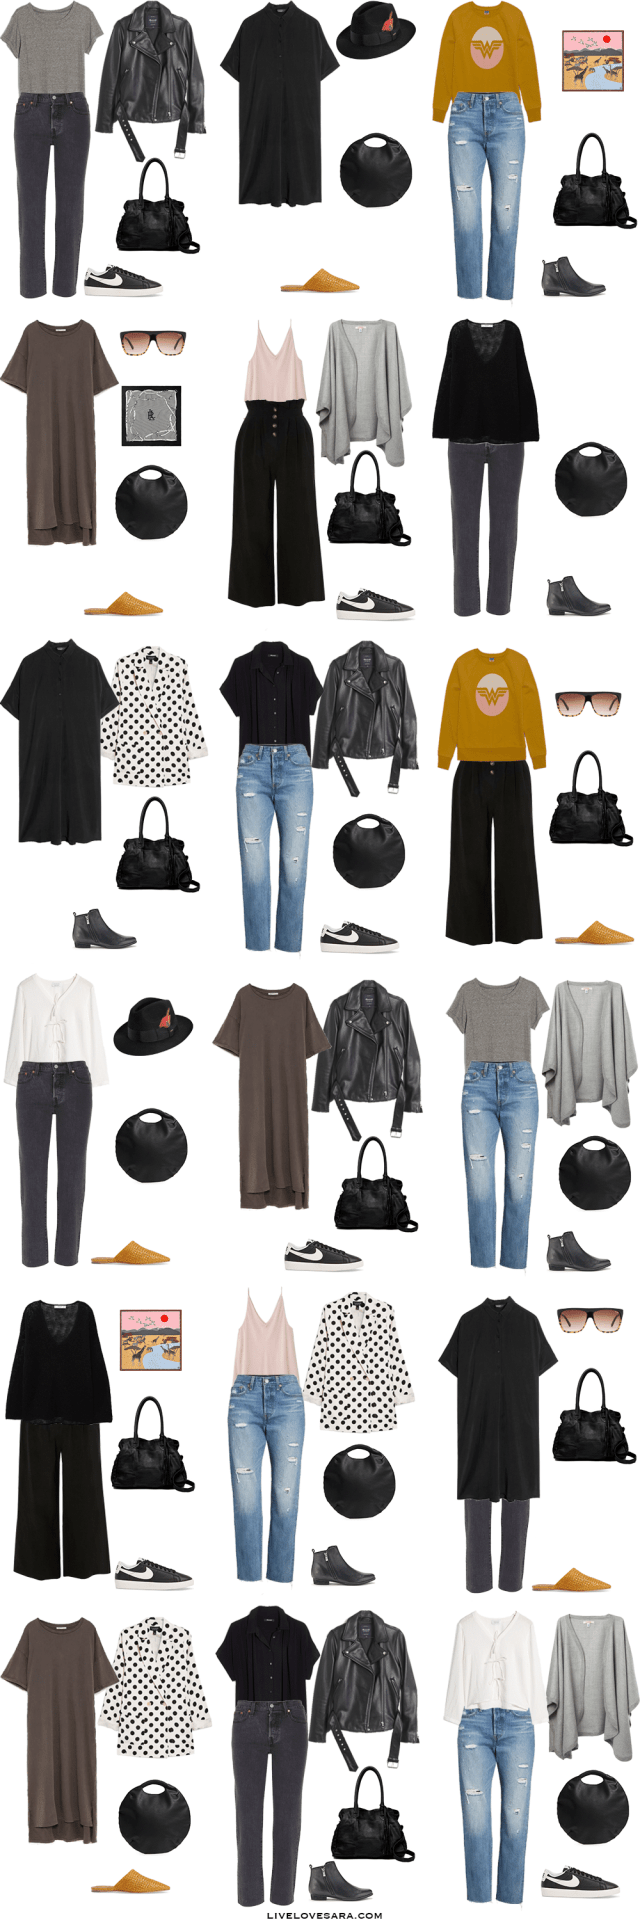 If you are wondering what to pack for Norway in the summer time for 10 days, you can see some outfit ideas here. What to Pack for Norway Packing Light List | What to pack for Norway l | What to Pack for Scandinavia | Packing Light | Packing List | Travel Light | Travel Wardrobe | Travel Capsule | Capsule | #capsulewardrobe #capsule #norway #scandinavia #livelovesara